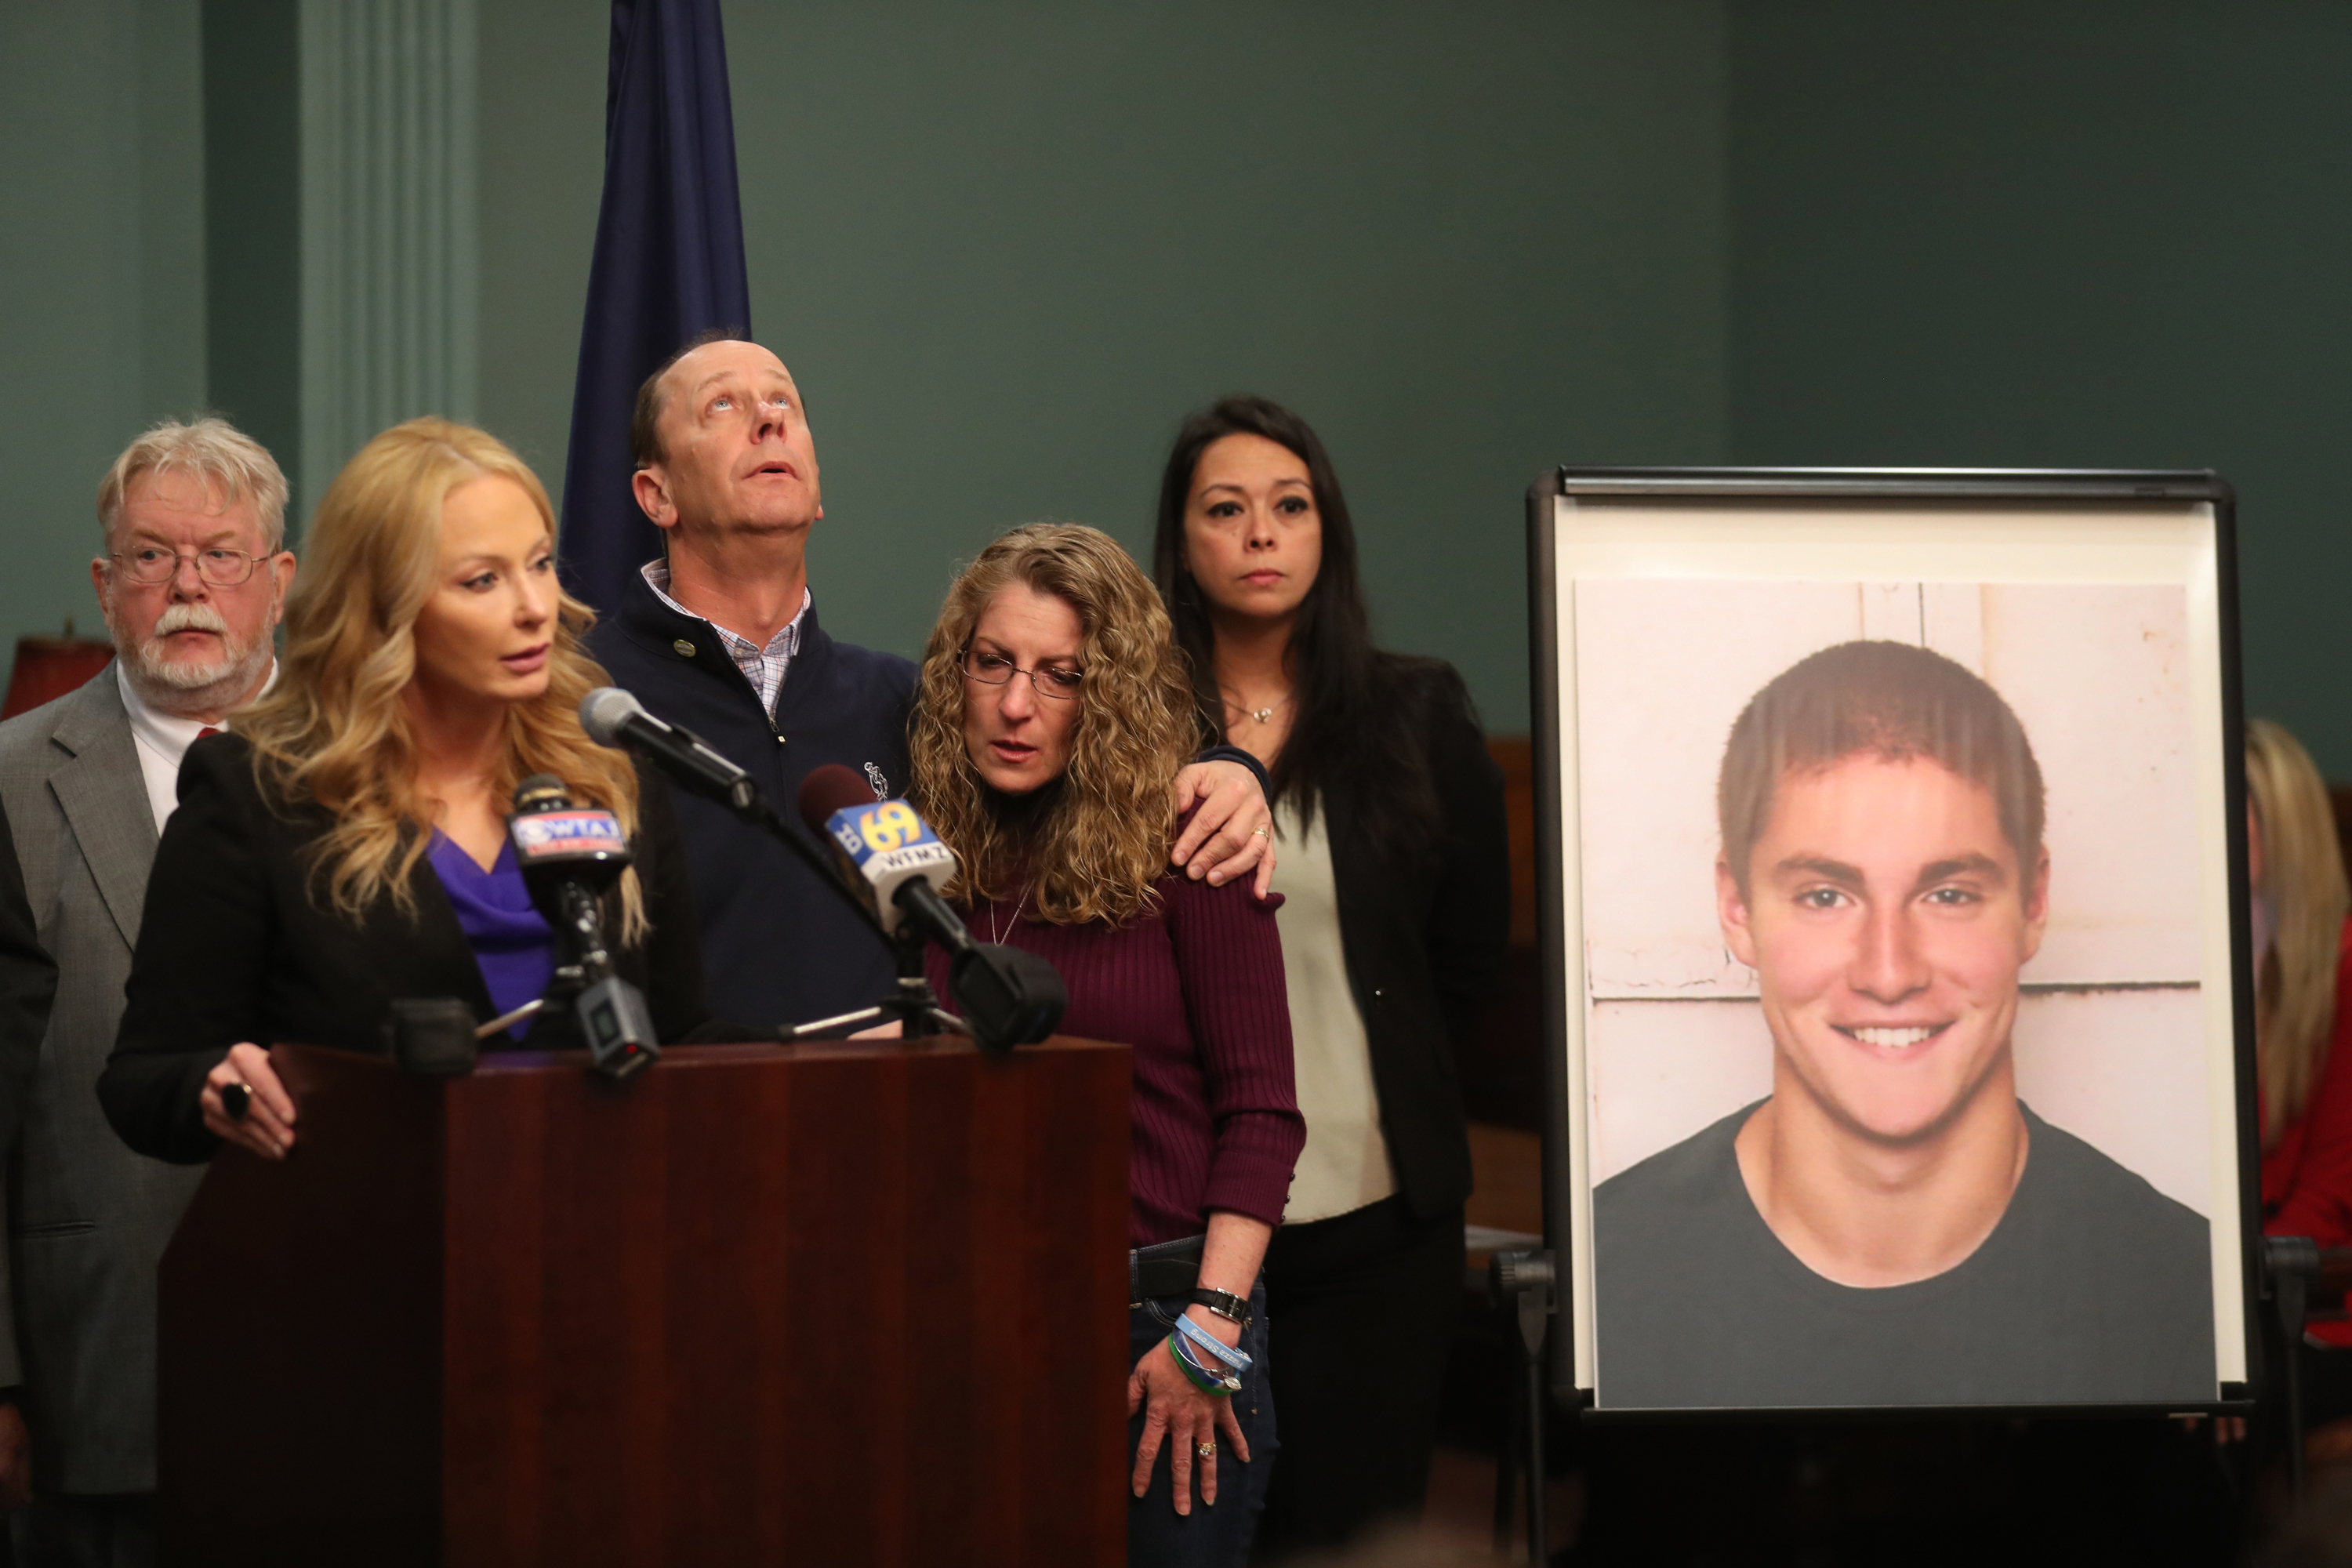 Centre County DA Stacy Parks Miller speaks about the Beta Theta Pi hazing investigation at Penn State University and the charges brought against 18 people. Timothy Piazza´a parents Jim and Evelyn Piazza stand with her in the Centre County Court annex in Bellefonte, Pa., Friday May 5, 2017. ( DAVID SWANSON / Staff Photographer ) ( AP Photo / The Philadelphia Inquirer, David Swanson )